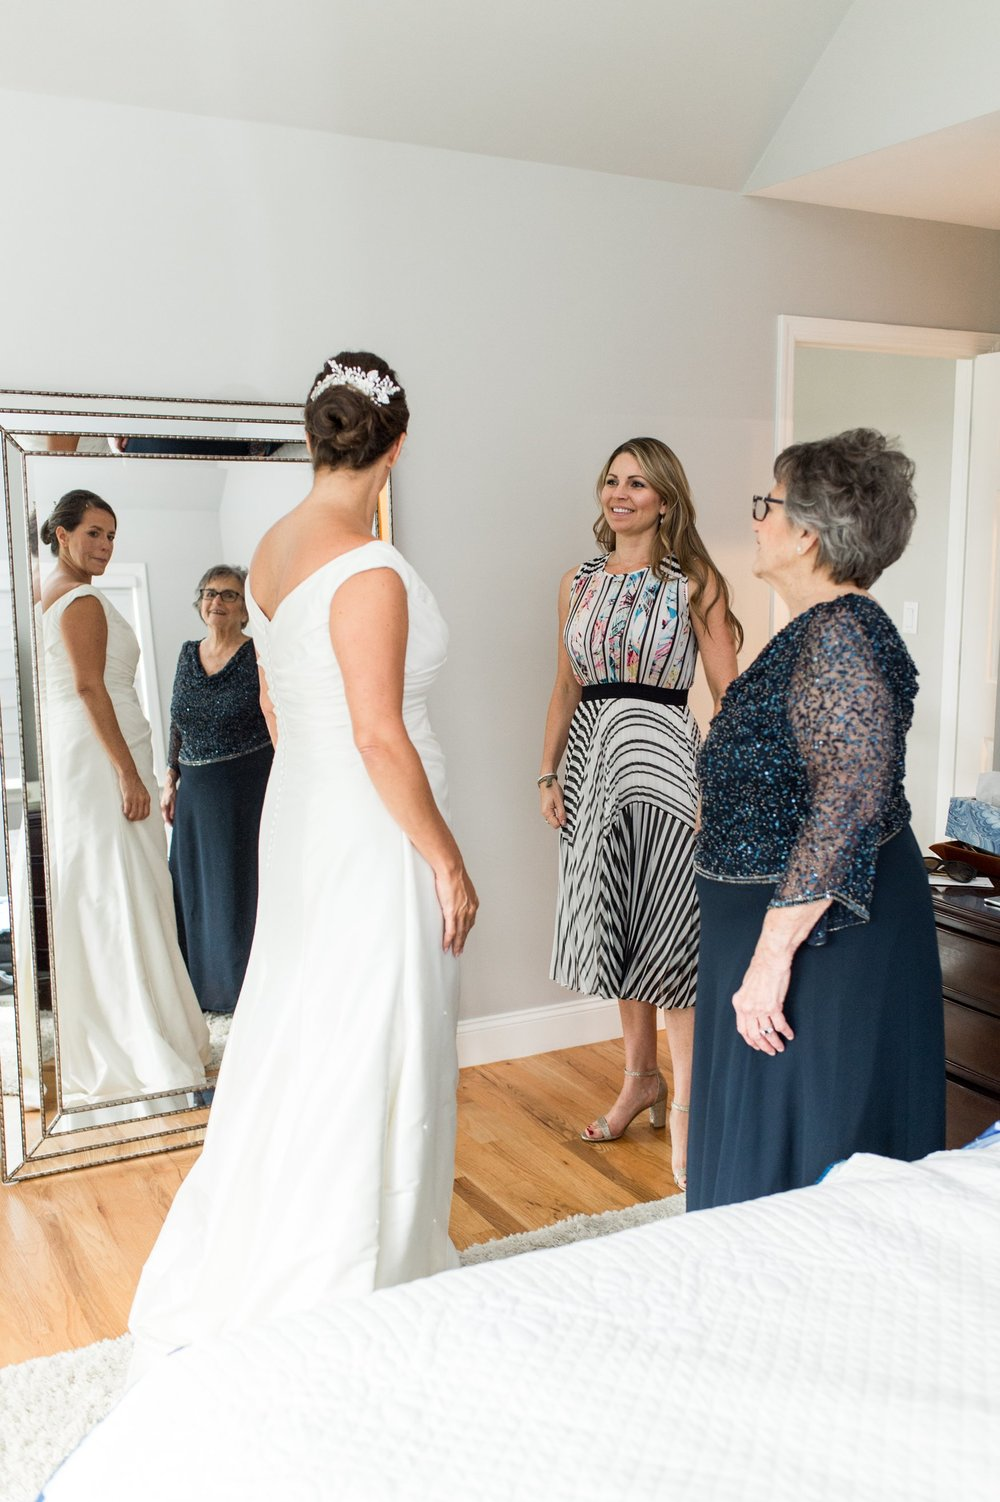 Bride wearing Augusta Jones wedding dress gets ready for nautical inspired wedding at Belle Haven Club in Greenwich CT